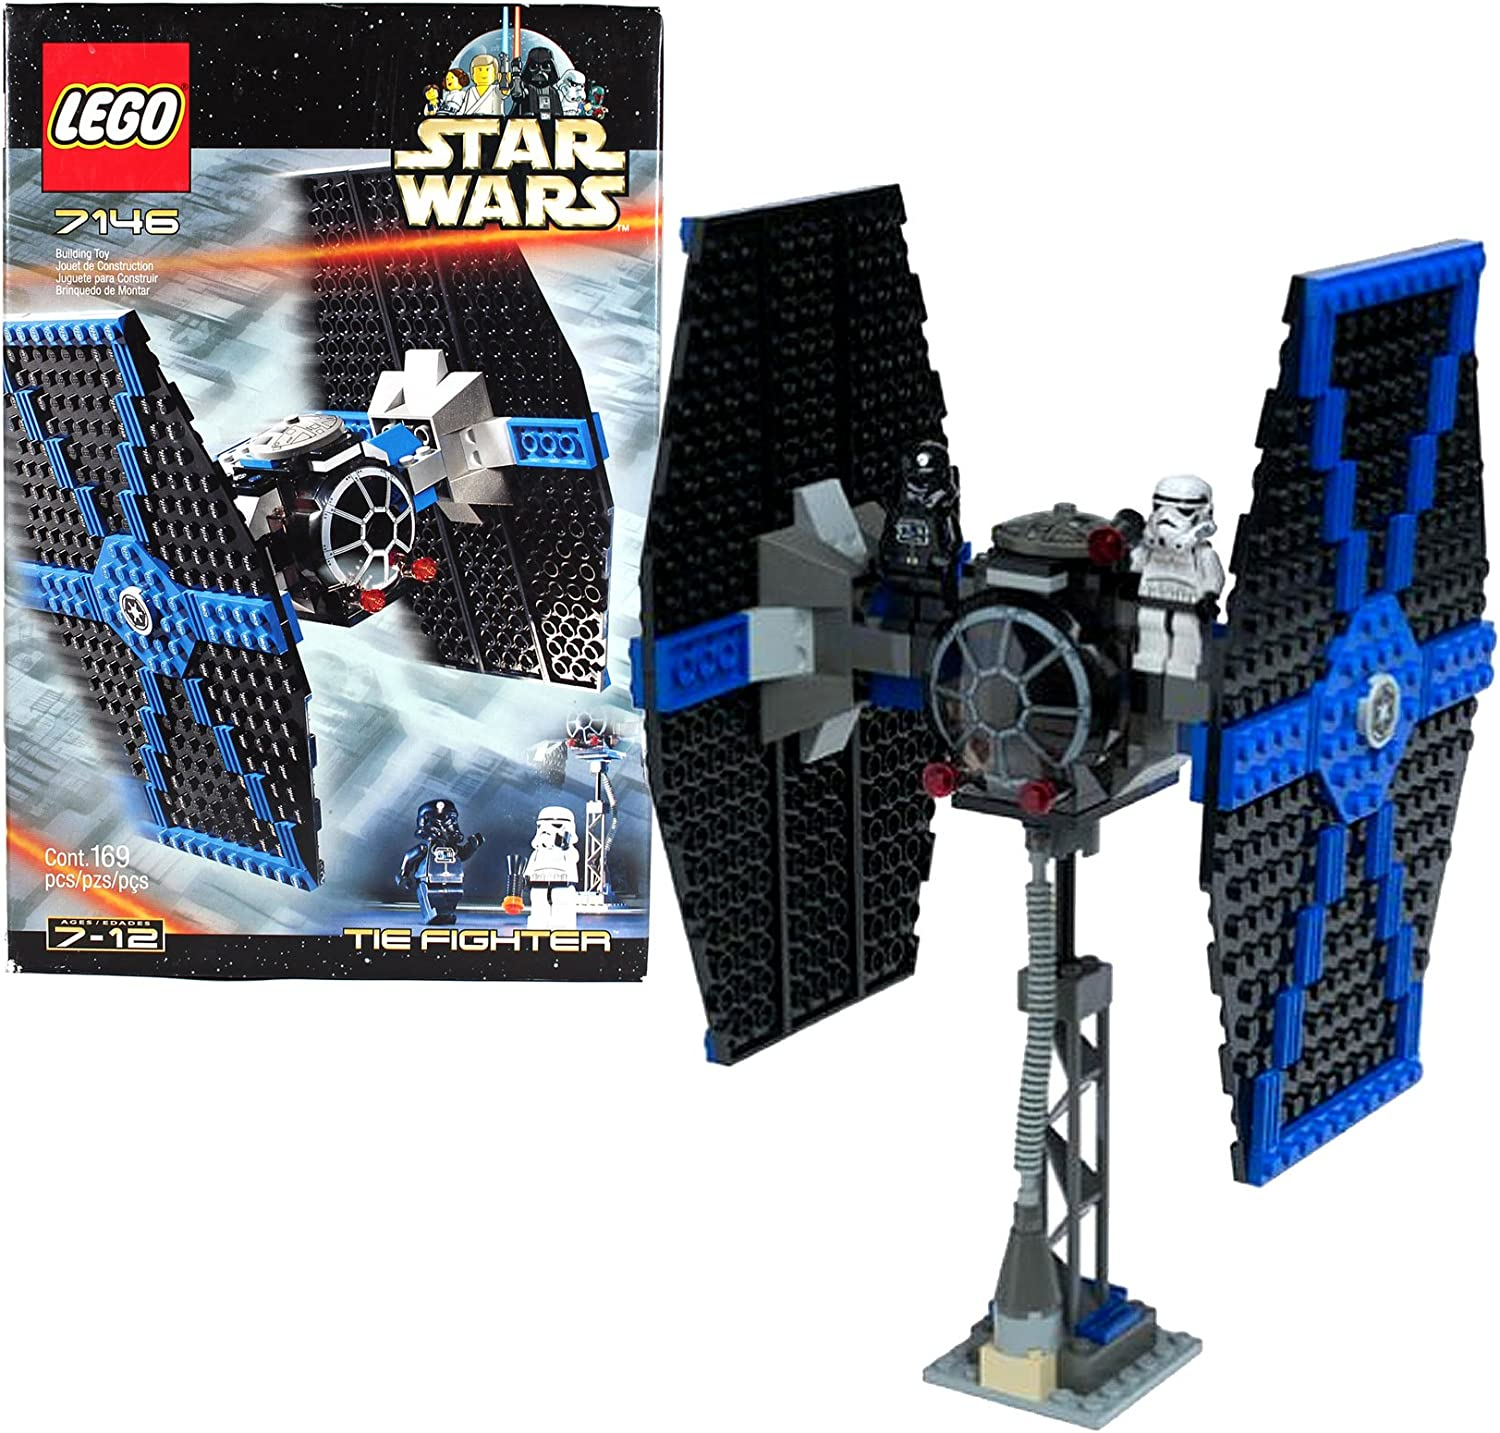 Lego Star Wars #7146 Tie Fighter